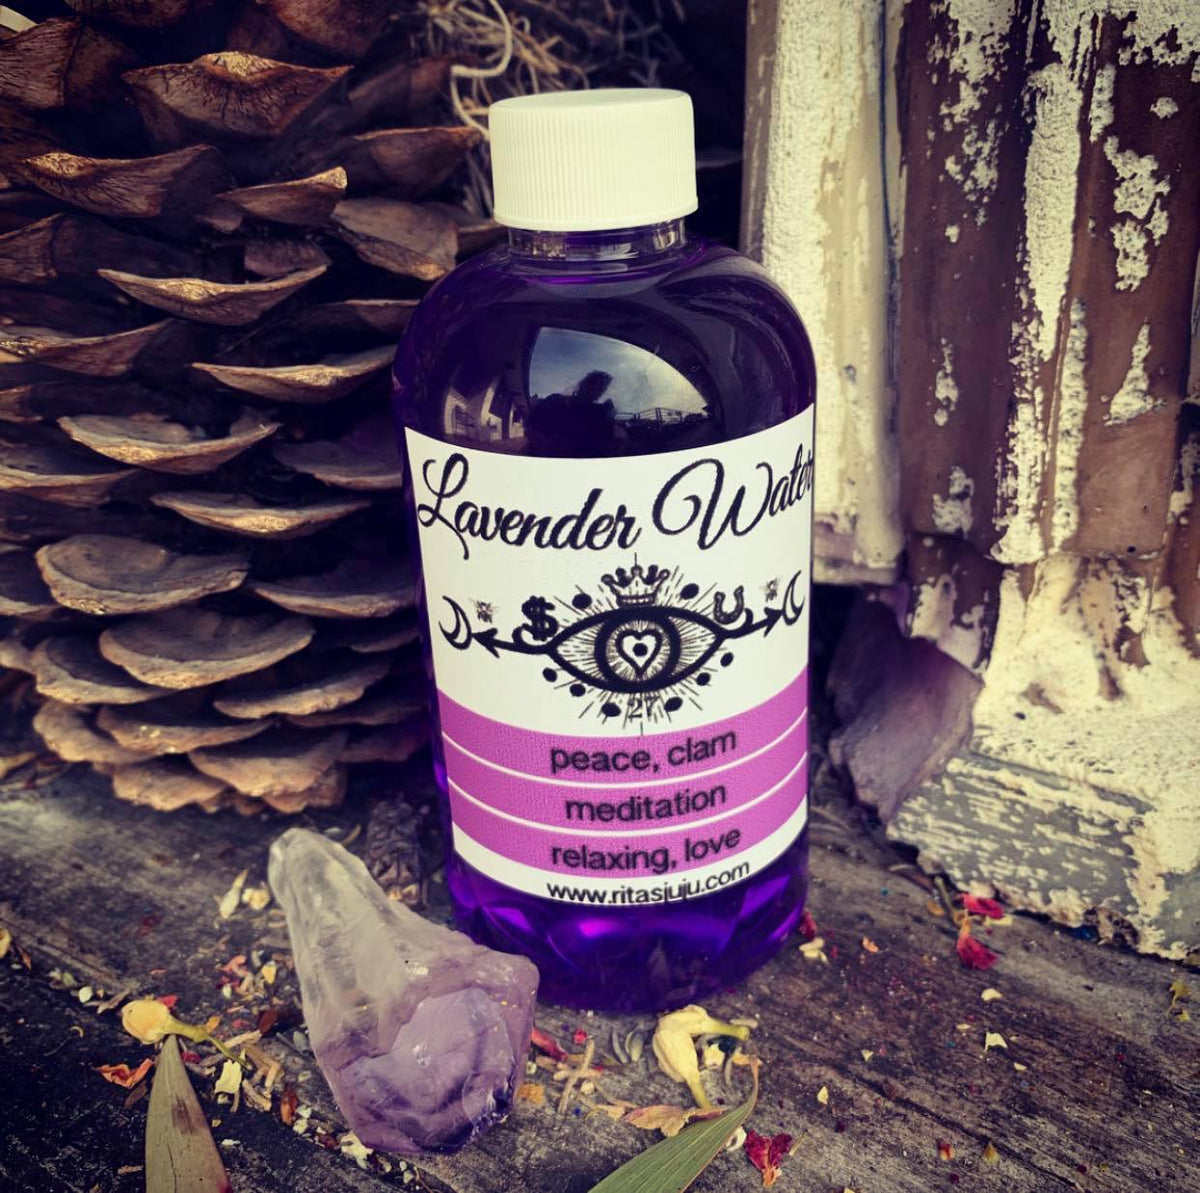 Rita's Lavender Bath and Floor Wash for Peace, Meditation, Calm,  Relaxation, Love